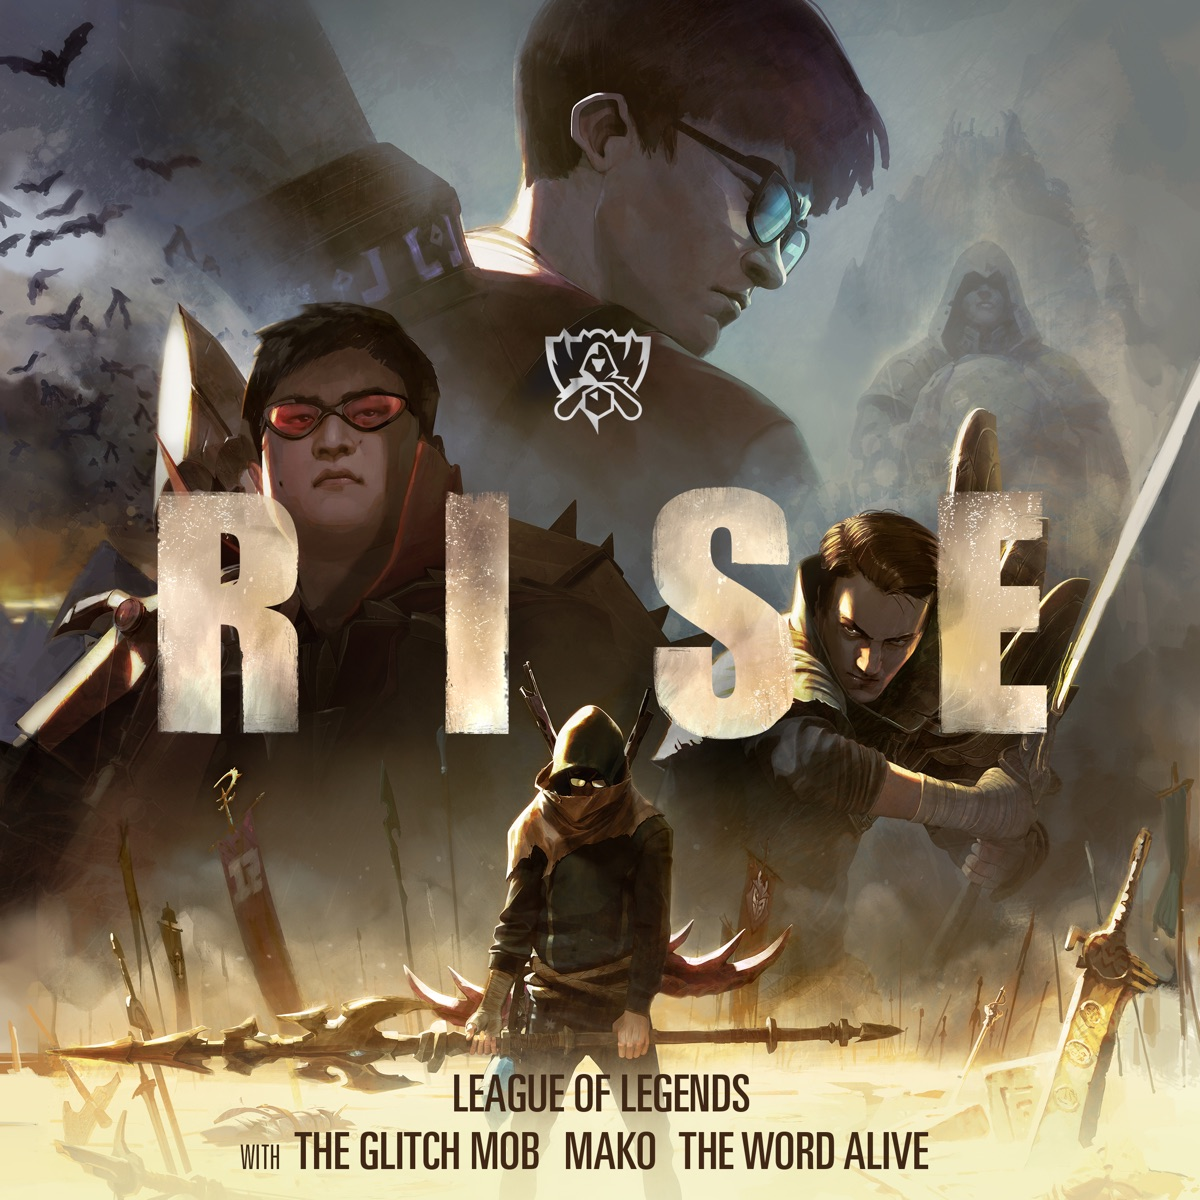 RISE feat The Word Alive - Single League of Legends The Glitch Mob  Mako CD cover